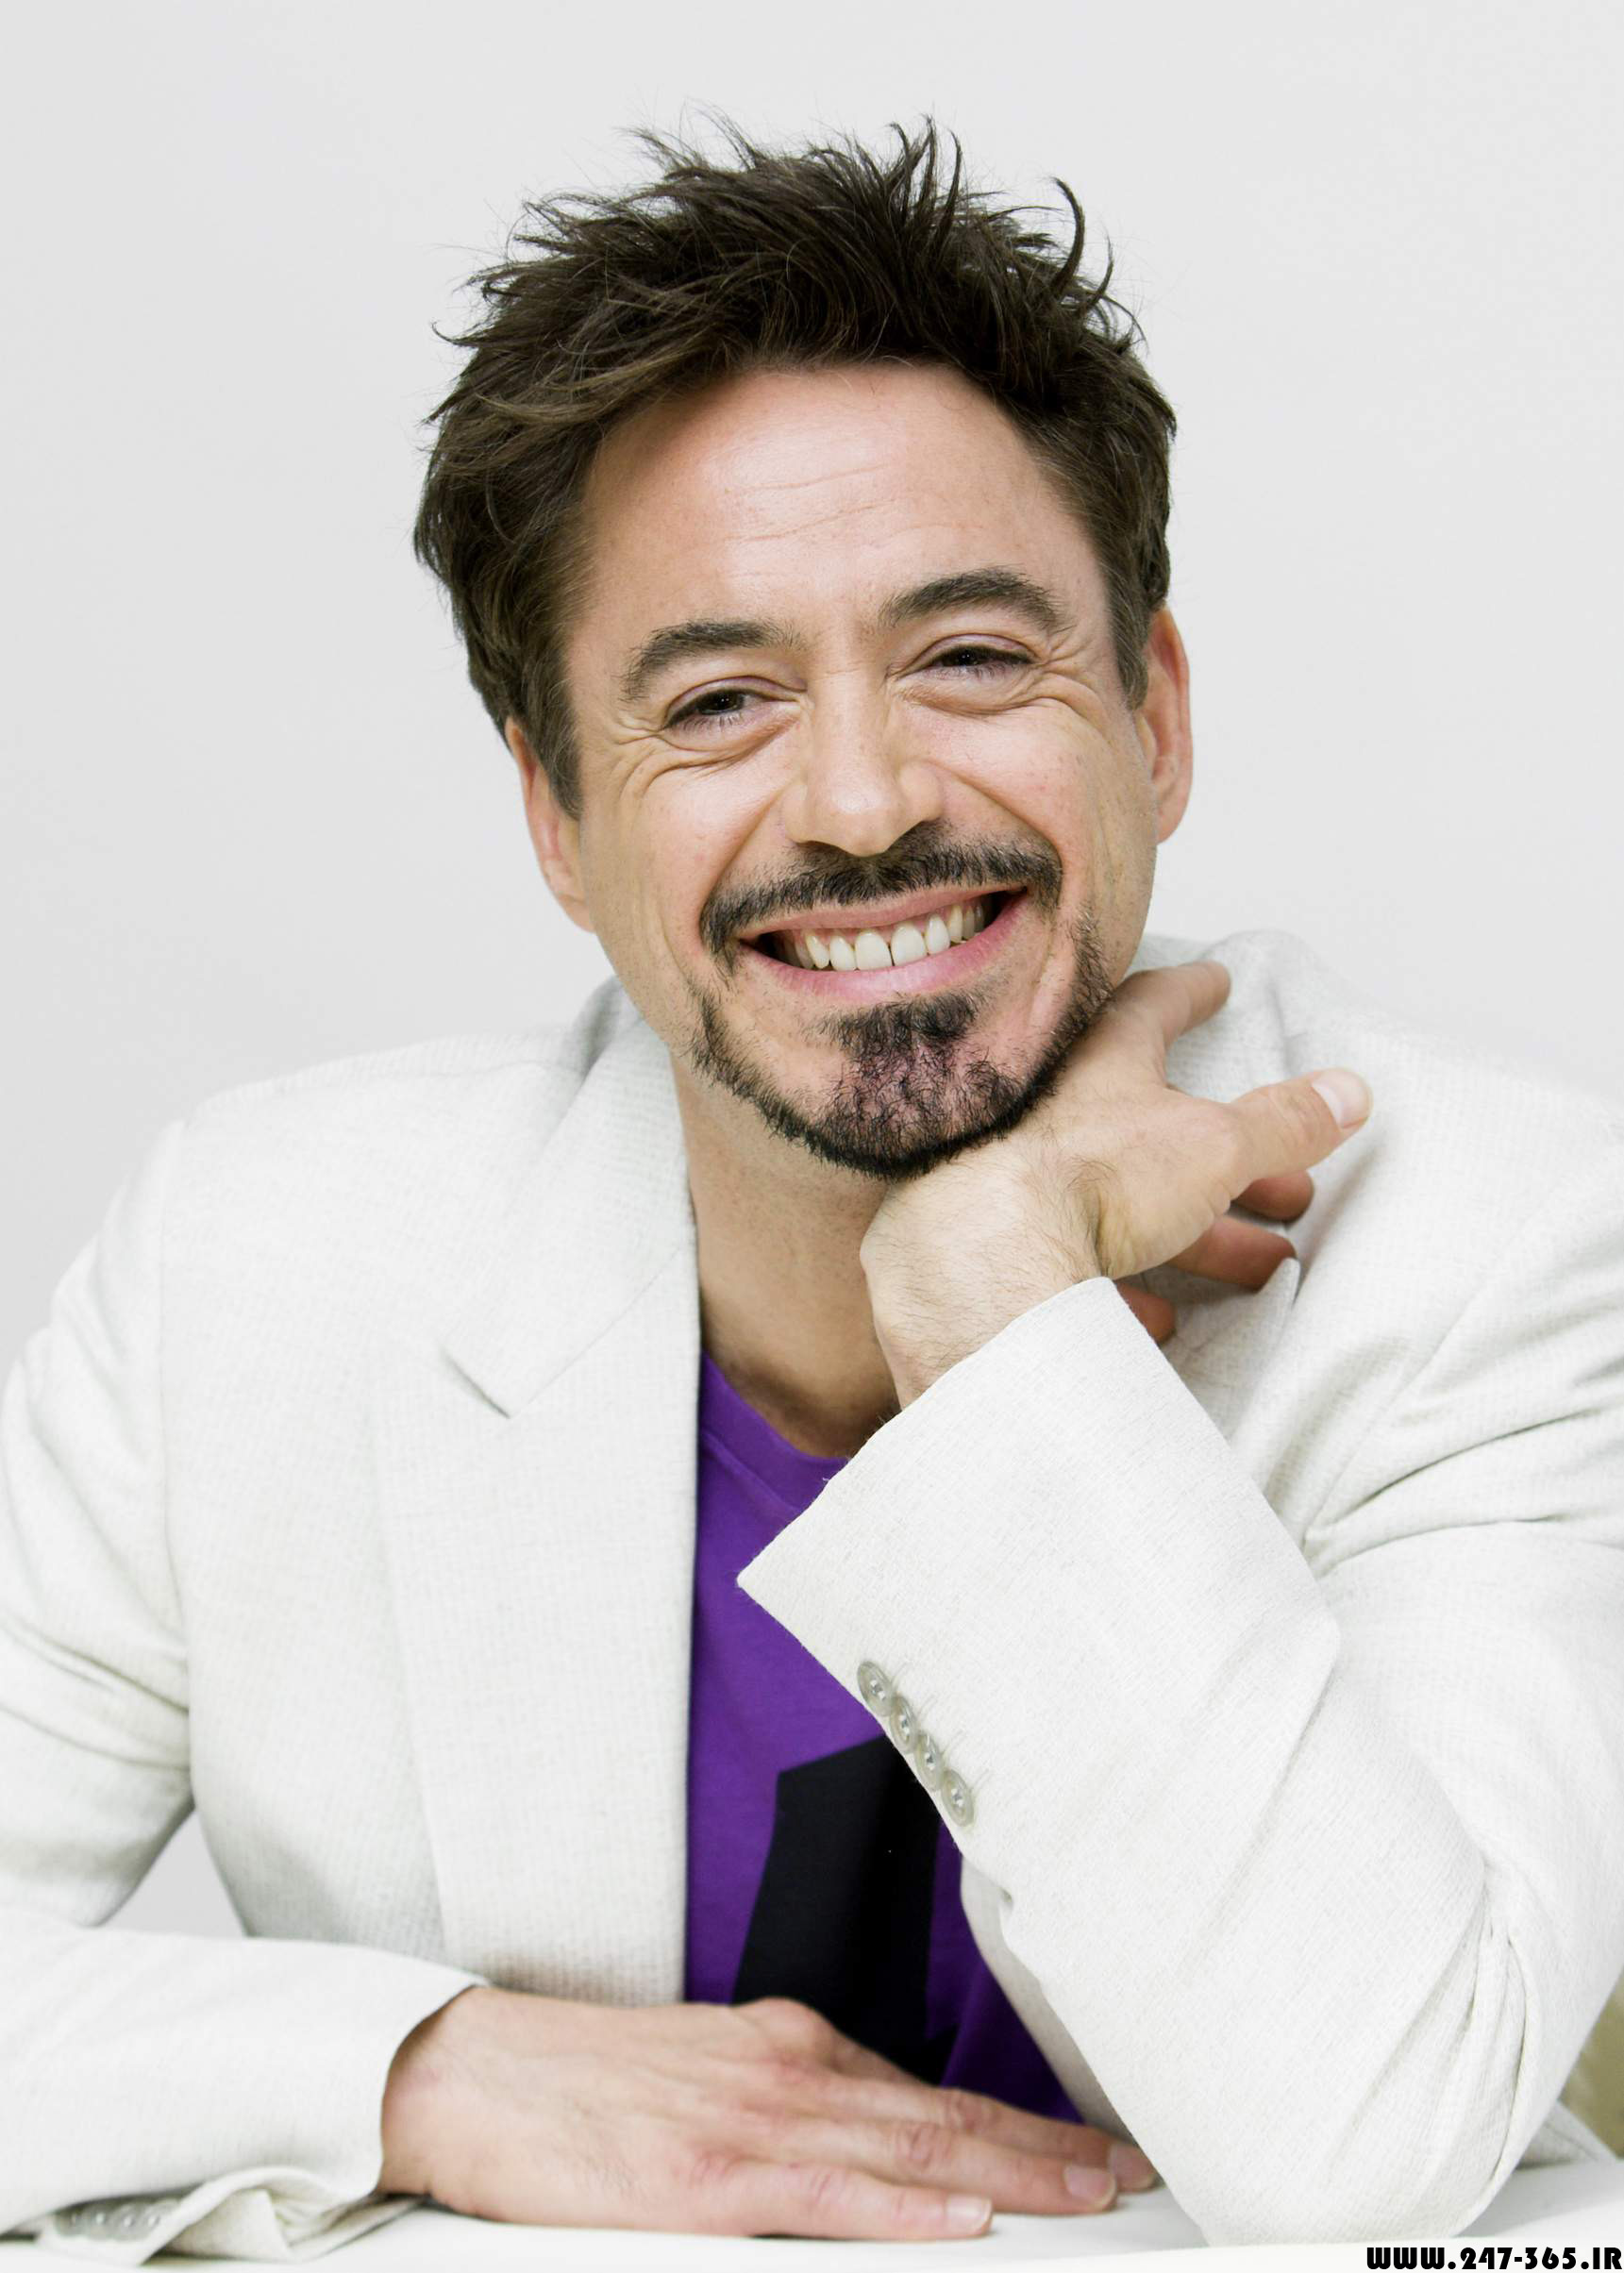 http://dl.247-365.ir/pic/celebrity/robert_downey_jr_4/Robert_Downey_Jr_4_01.jpg